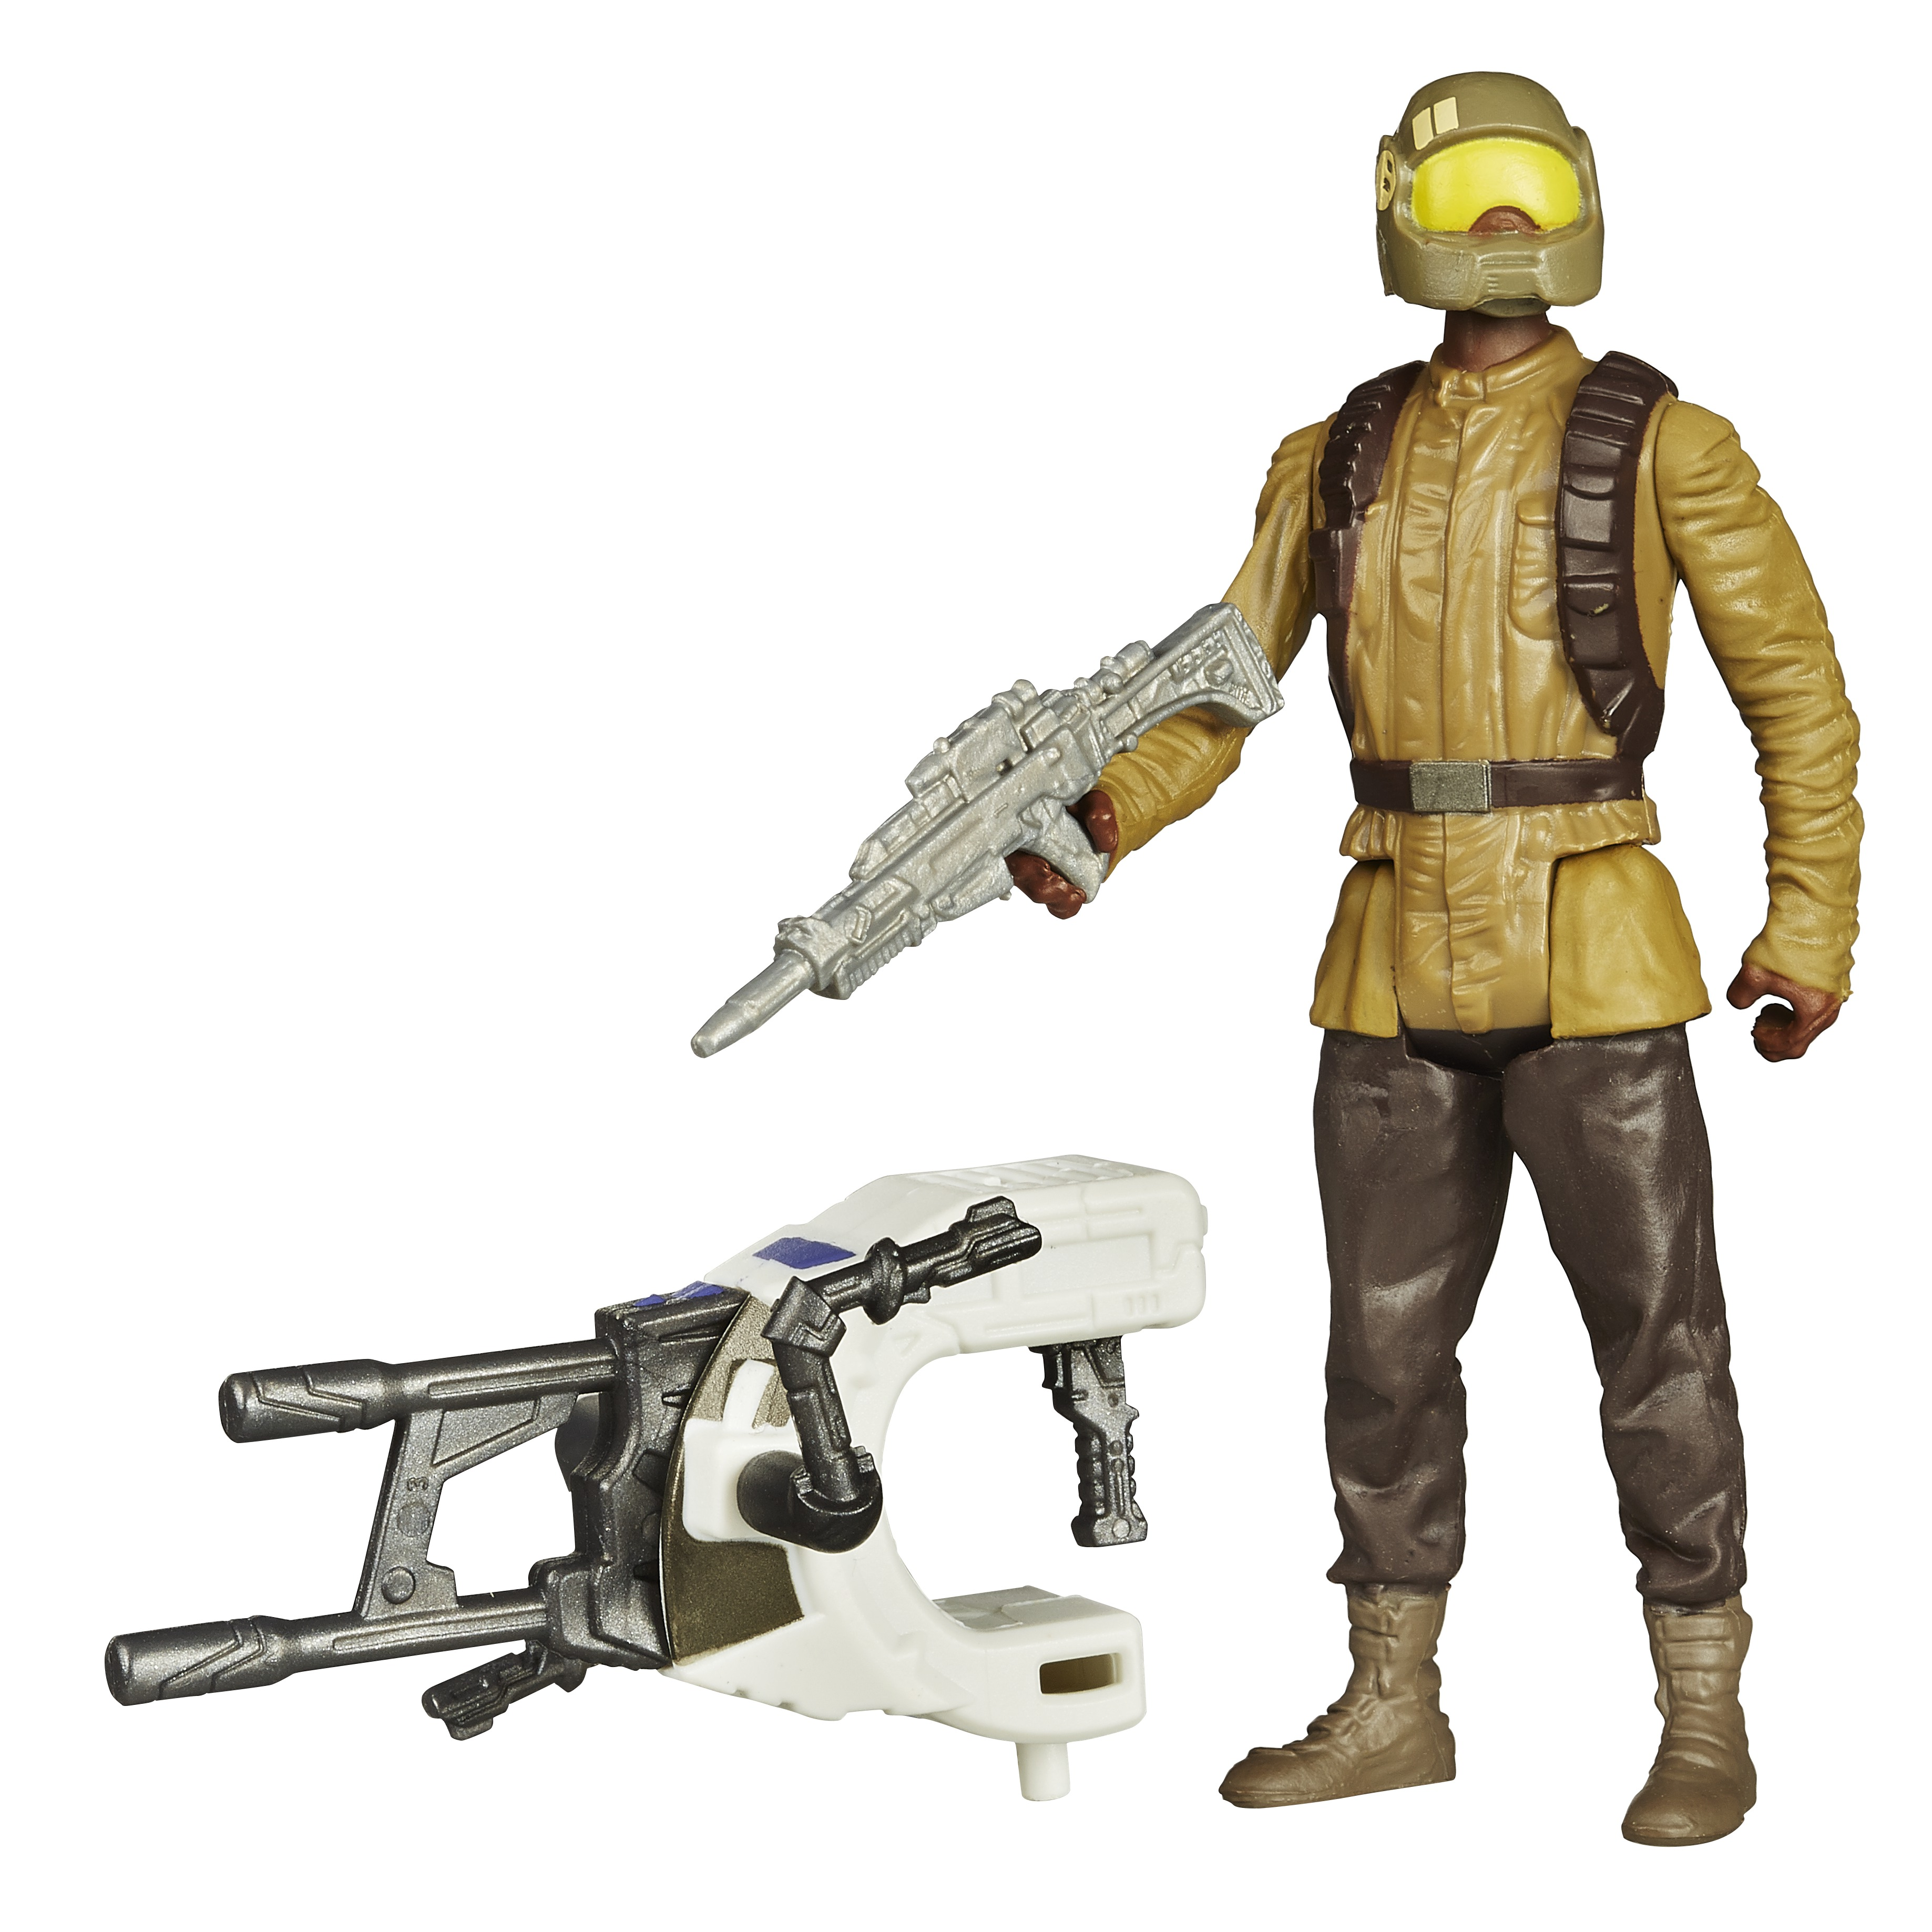 <b>Star Wars <i>The Force Awakens</i> Build a Weapon</b>; Rebellion Pilot